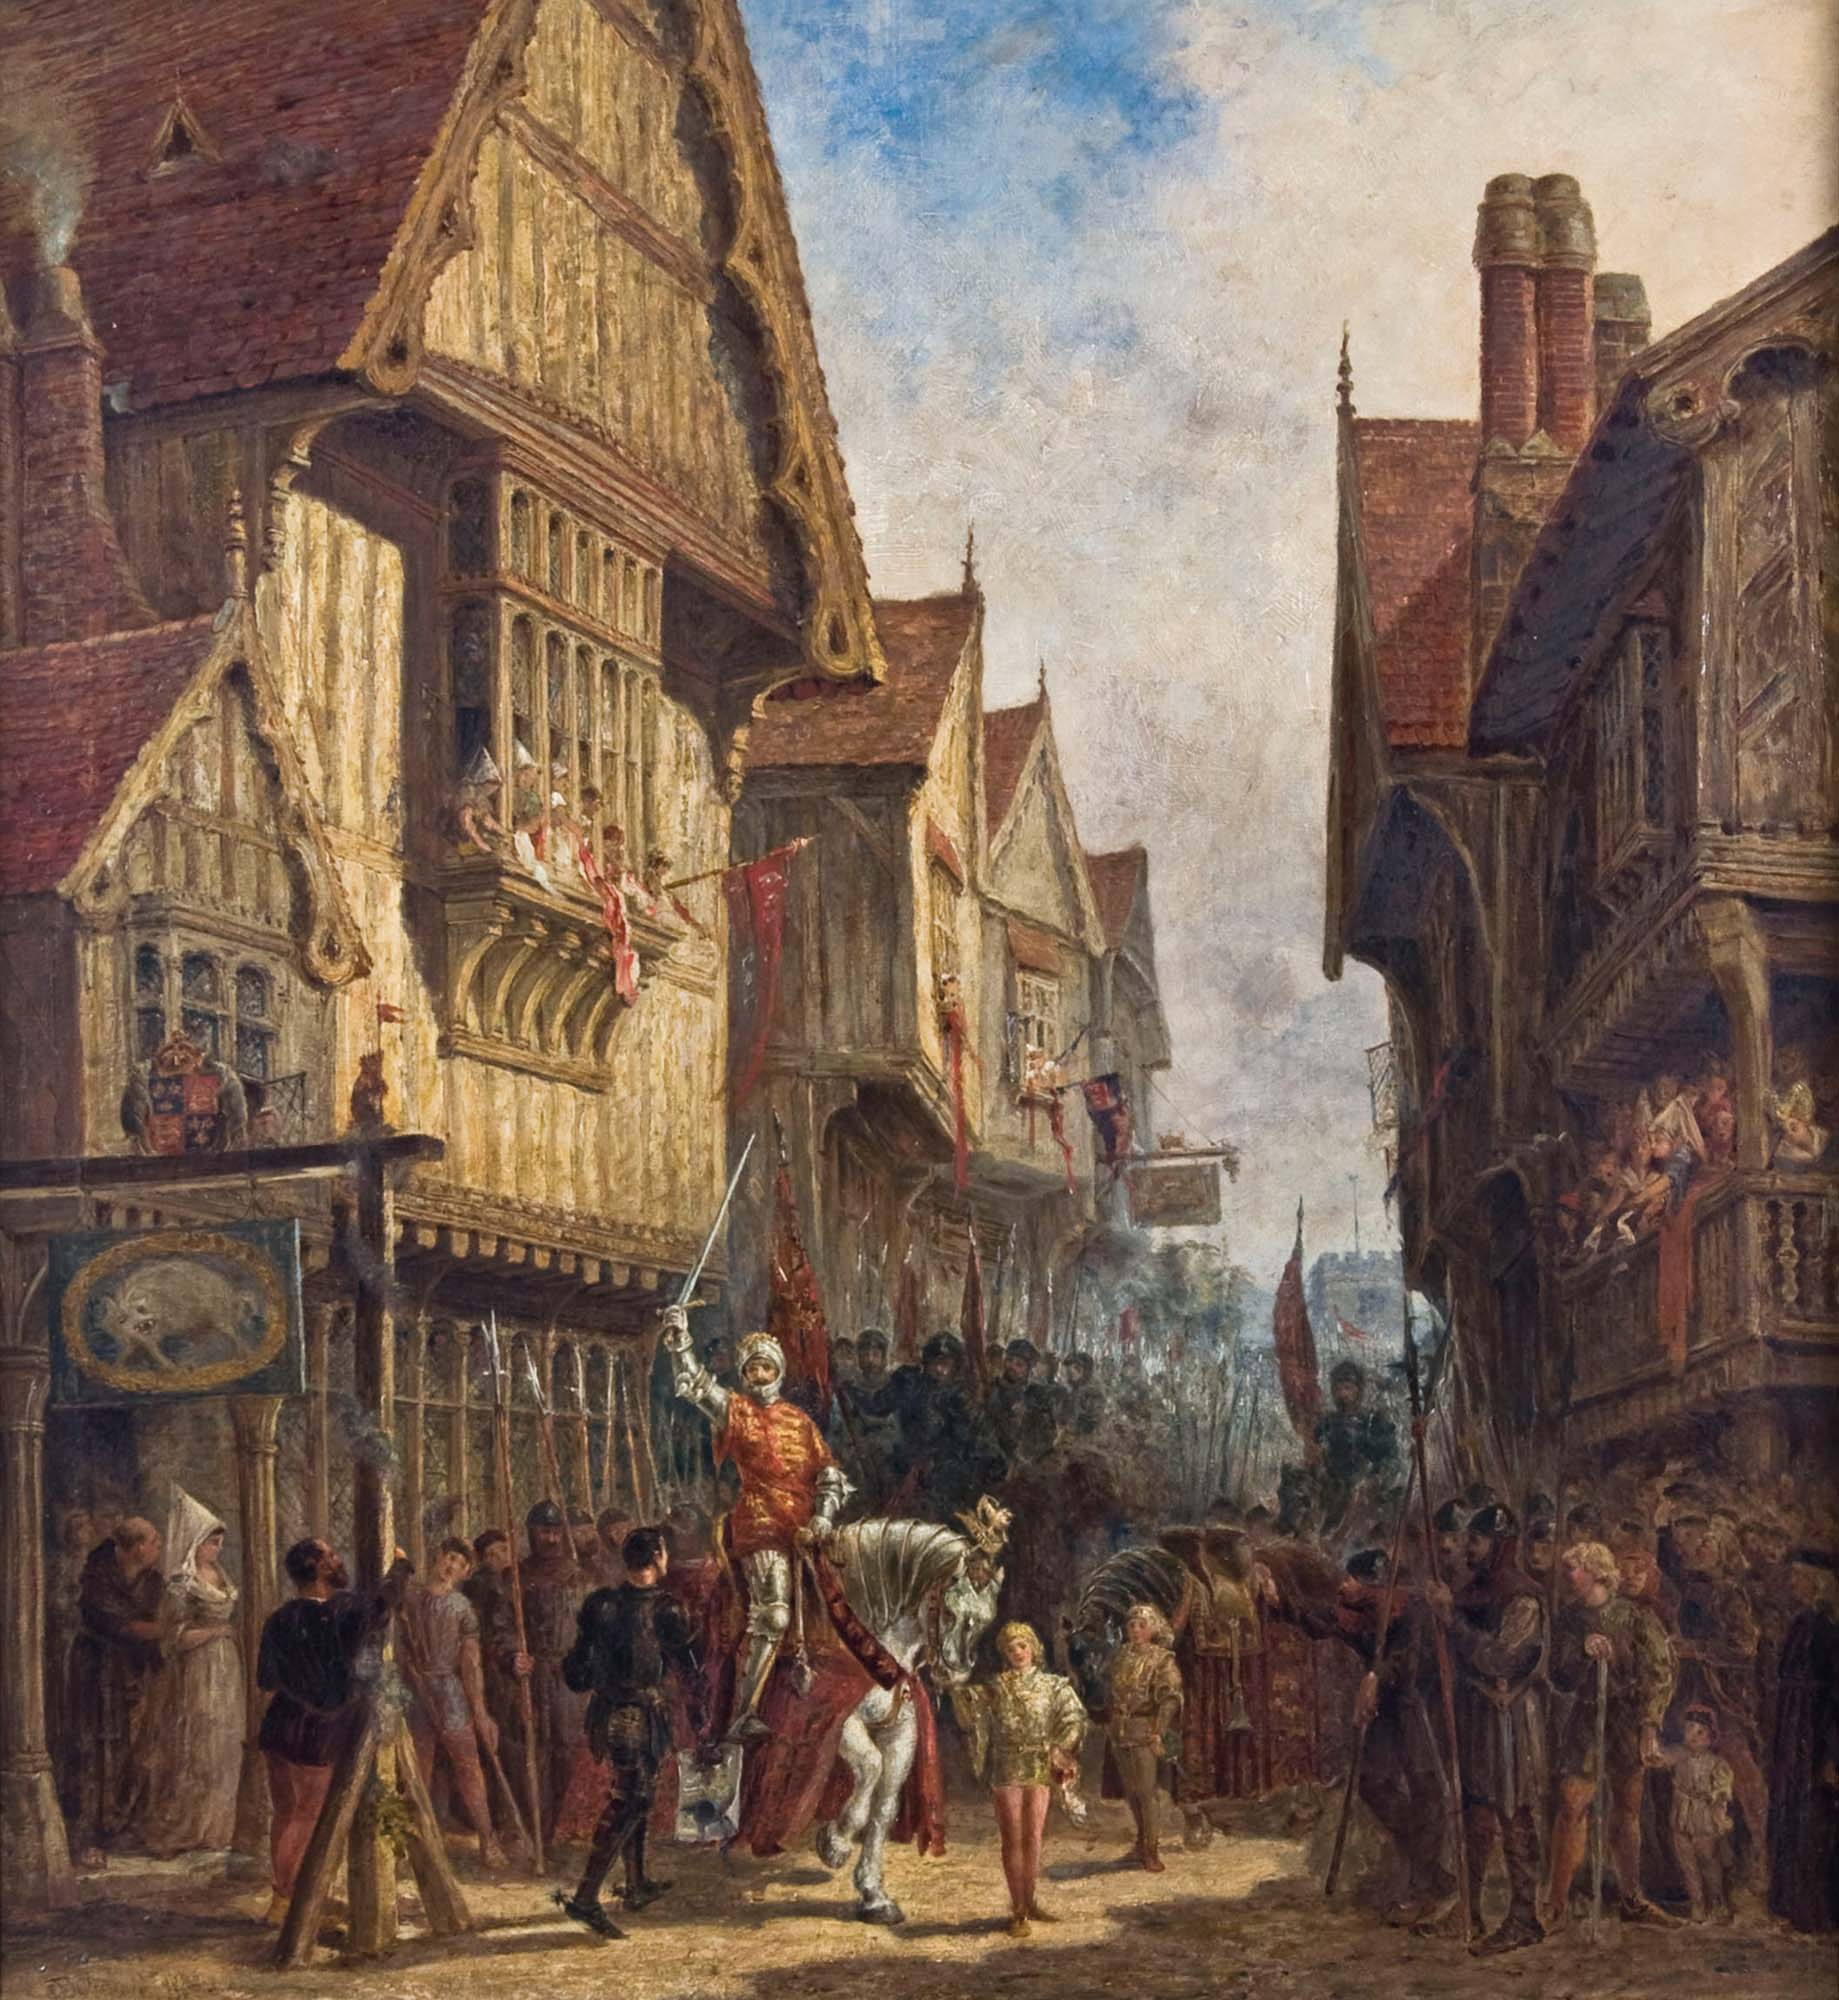 'Richard III outside the Blue Boar Inn' J Fulleylove, 1880 -